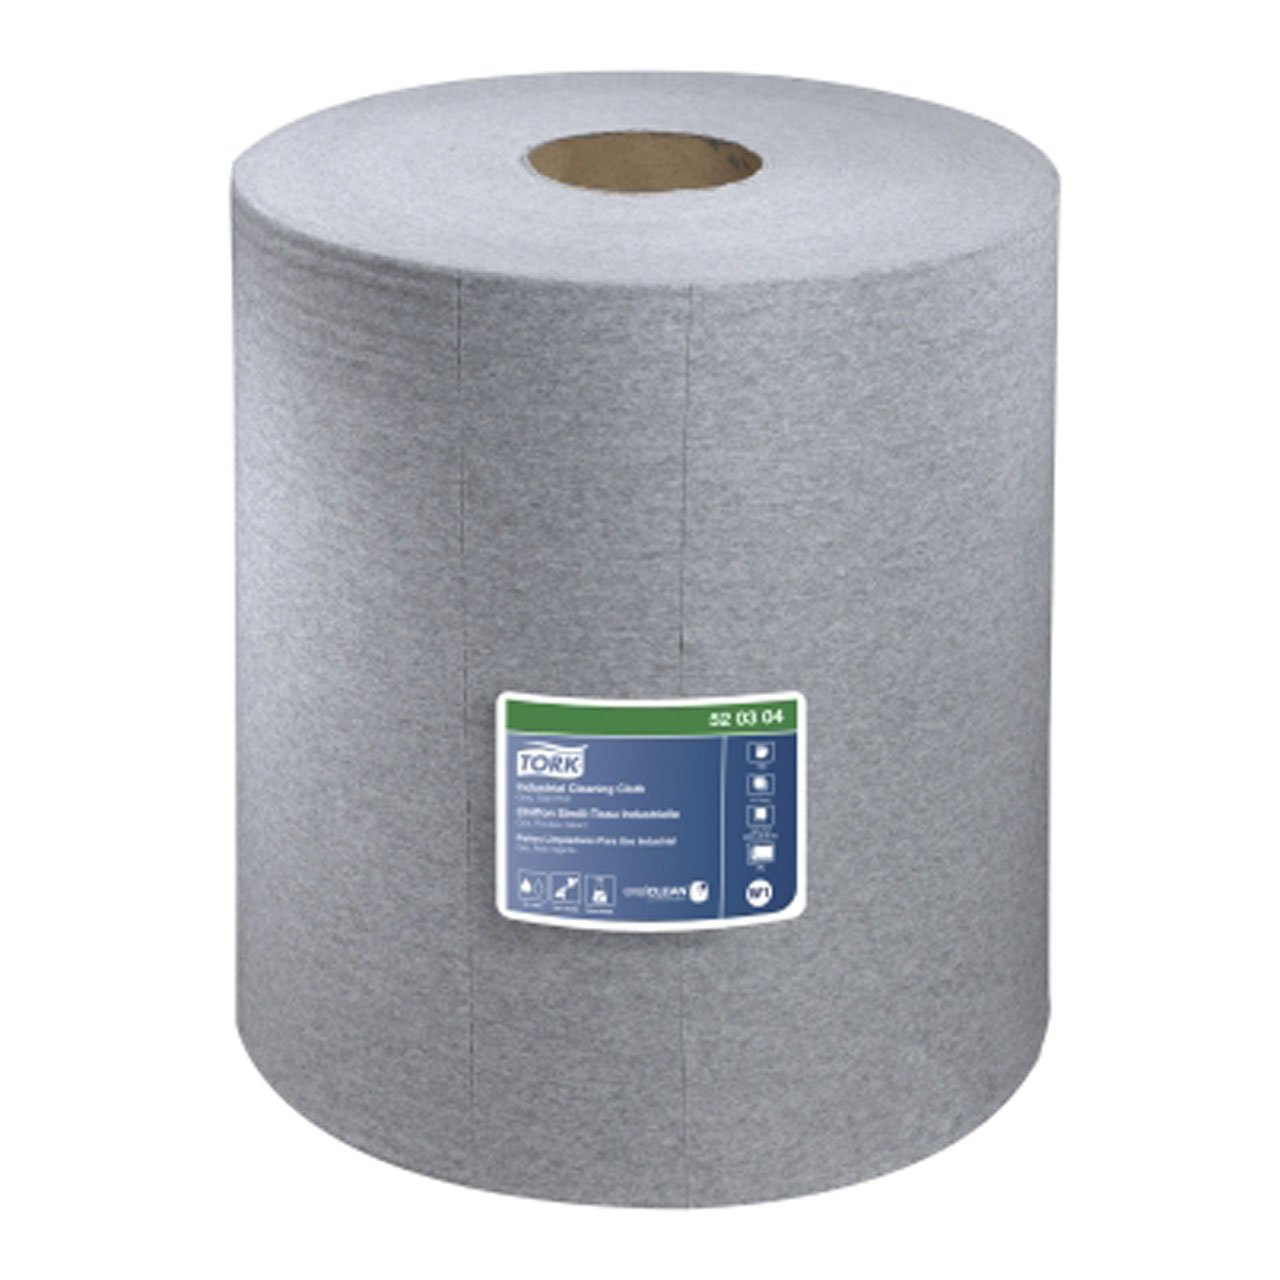 Tork 520304 Industrial Giant Roll Single-Ply Cleaning Cloth, Gray